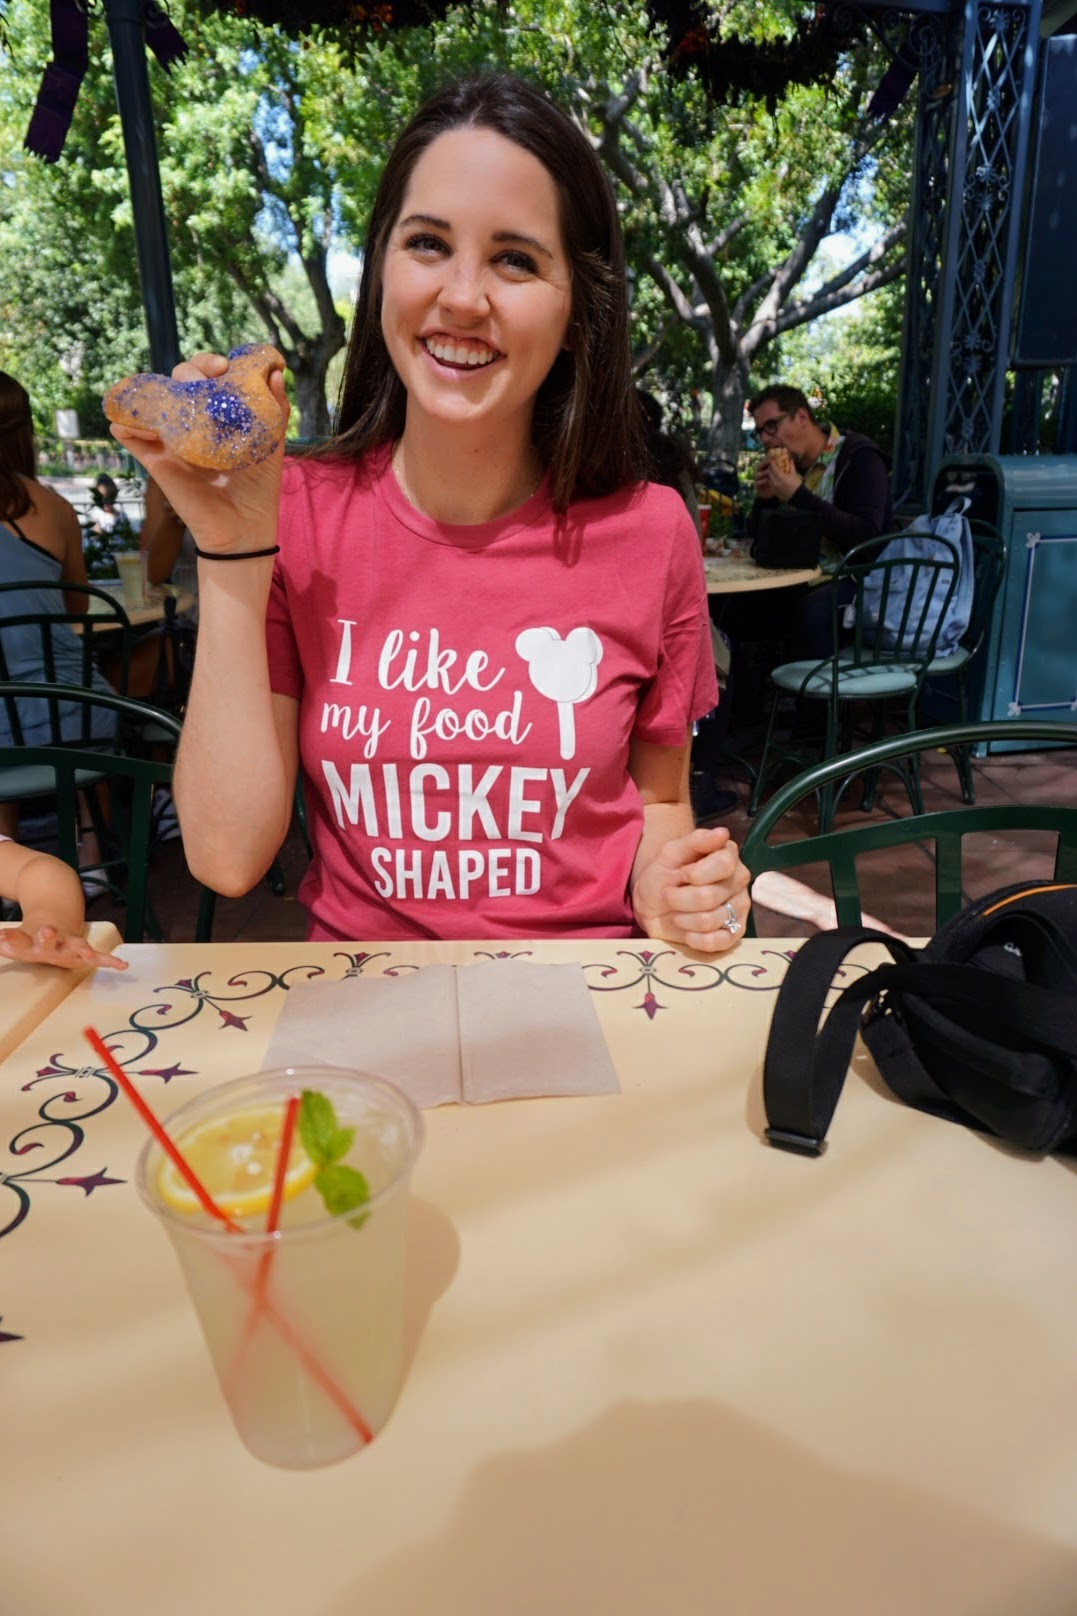 Mickey-shaped Beignets - Mint Julep Bar in Disneyland (they currently have blackberry for the seasonal flavor and it is SO GOOD)